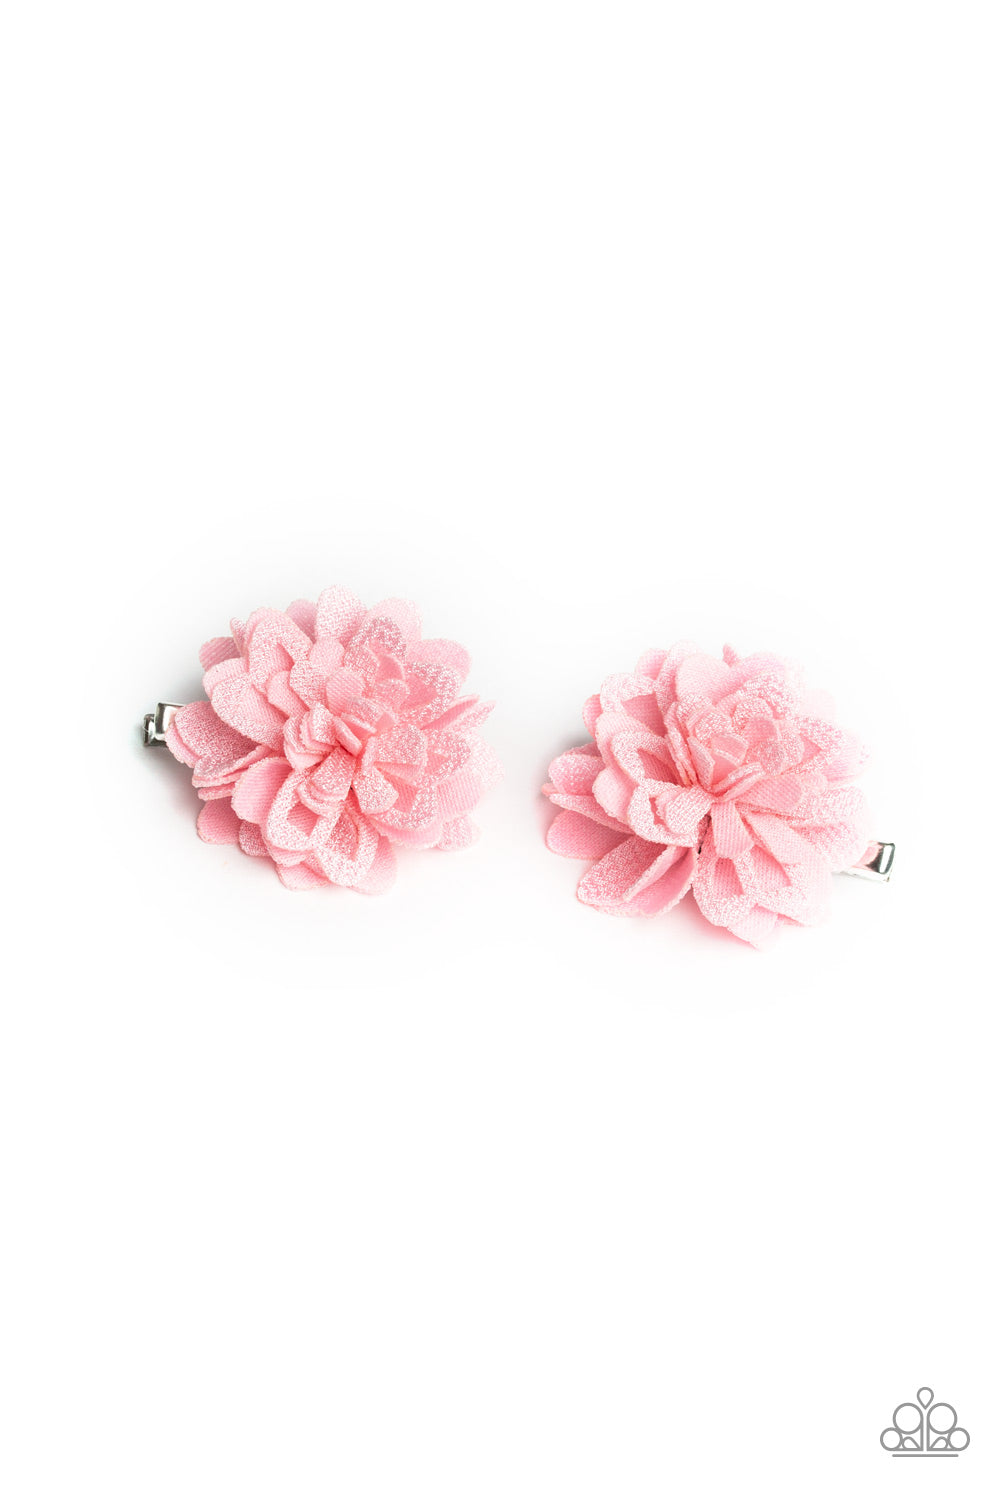 Fauna and Flora - Pink - Hair Clips